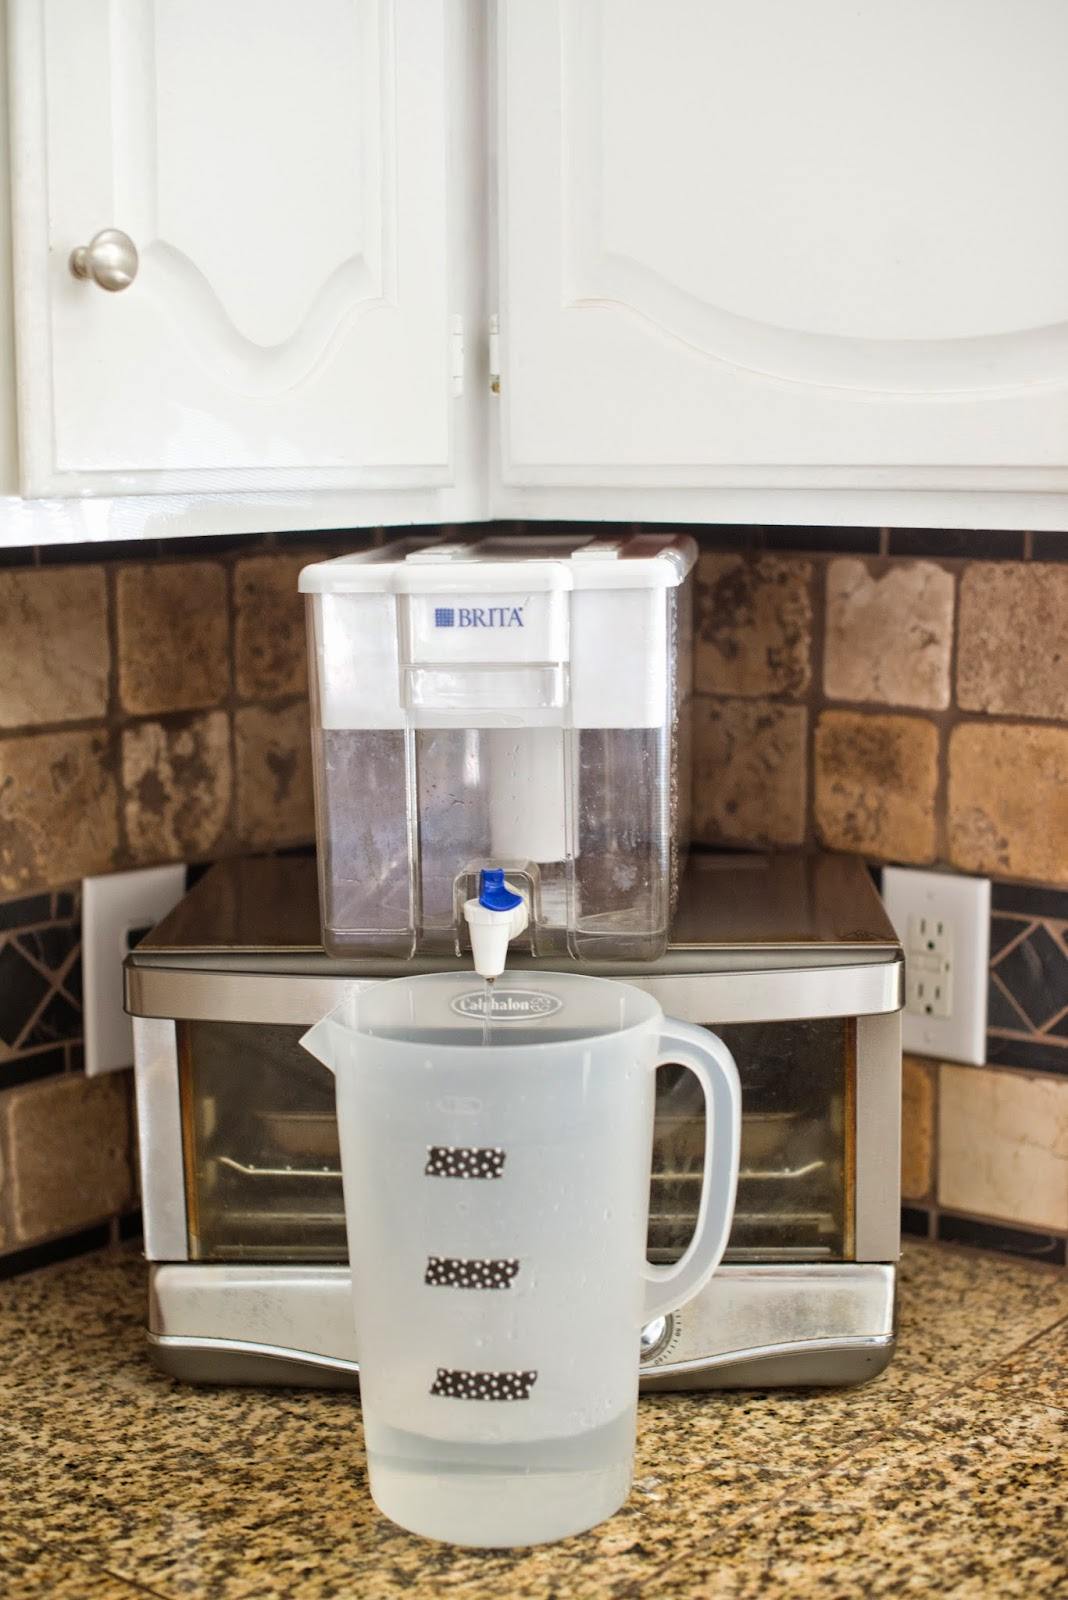 Beautiful I Have Been A Water Snob For Years. Only Filtered For Me Please. So I Fill  Up Our Brita Filter.